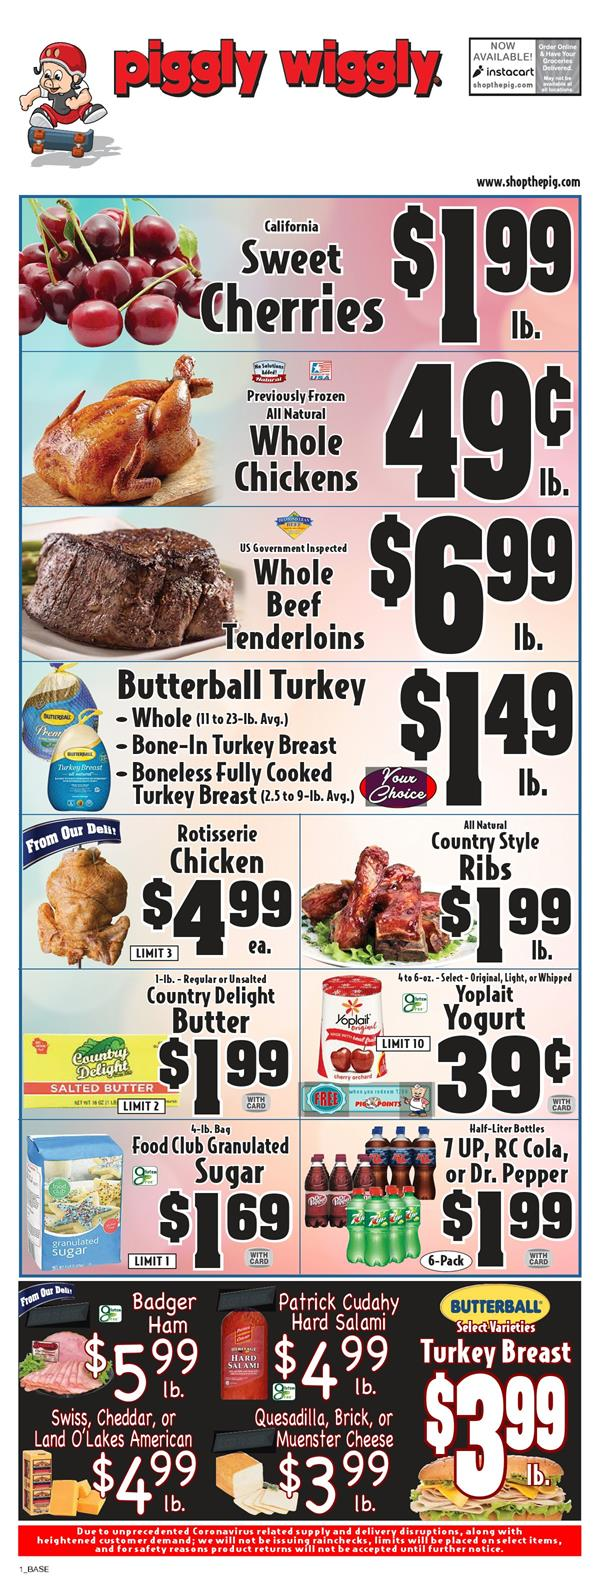 piggly wiggly fresh produce final may ad valid from may 27 jun 2 2020